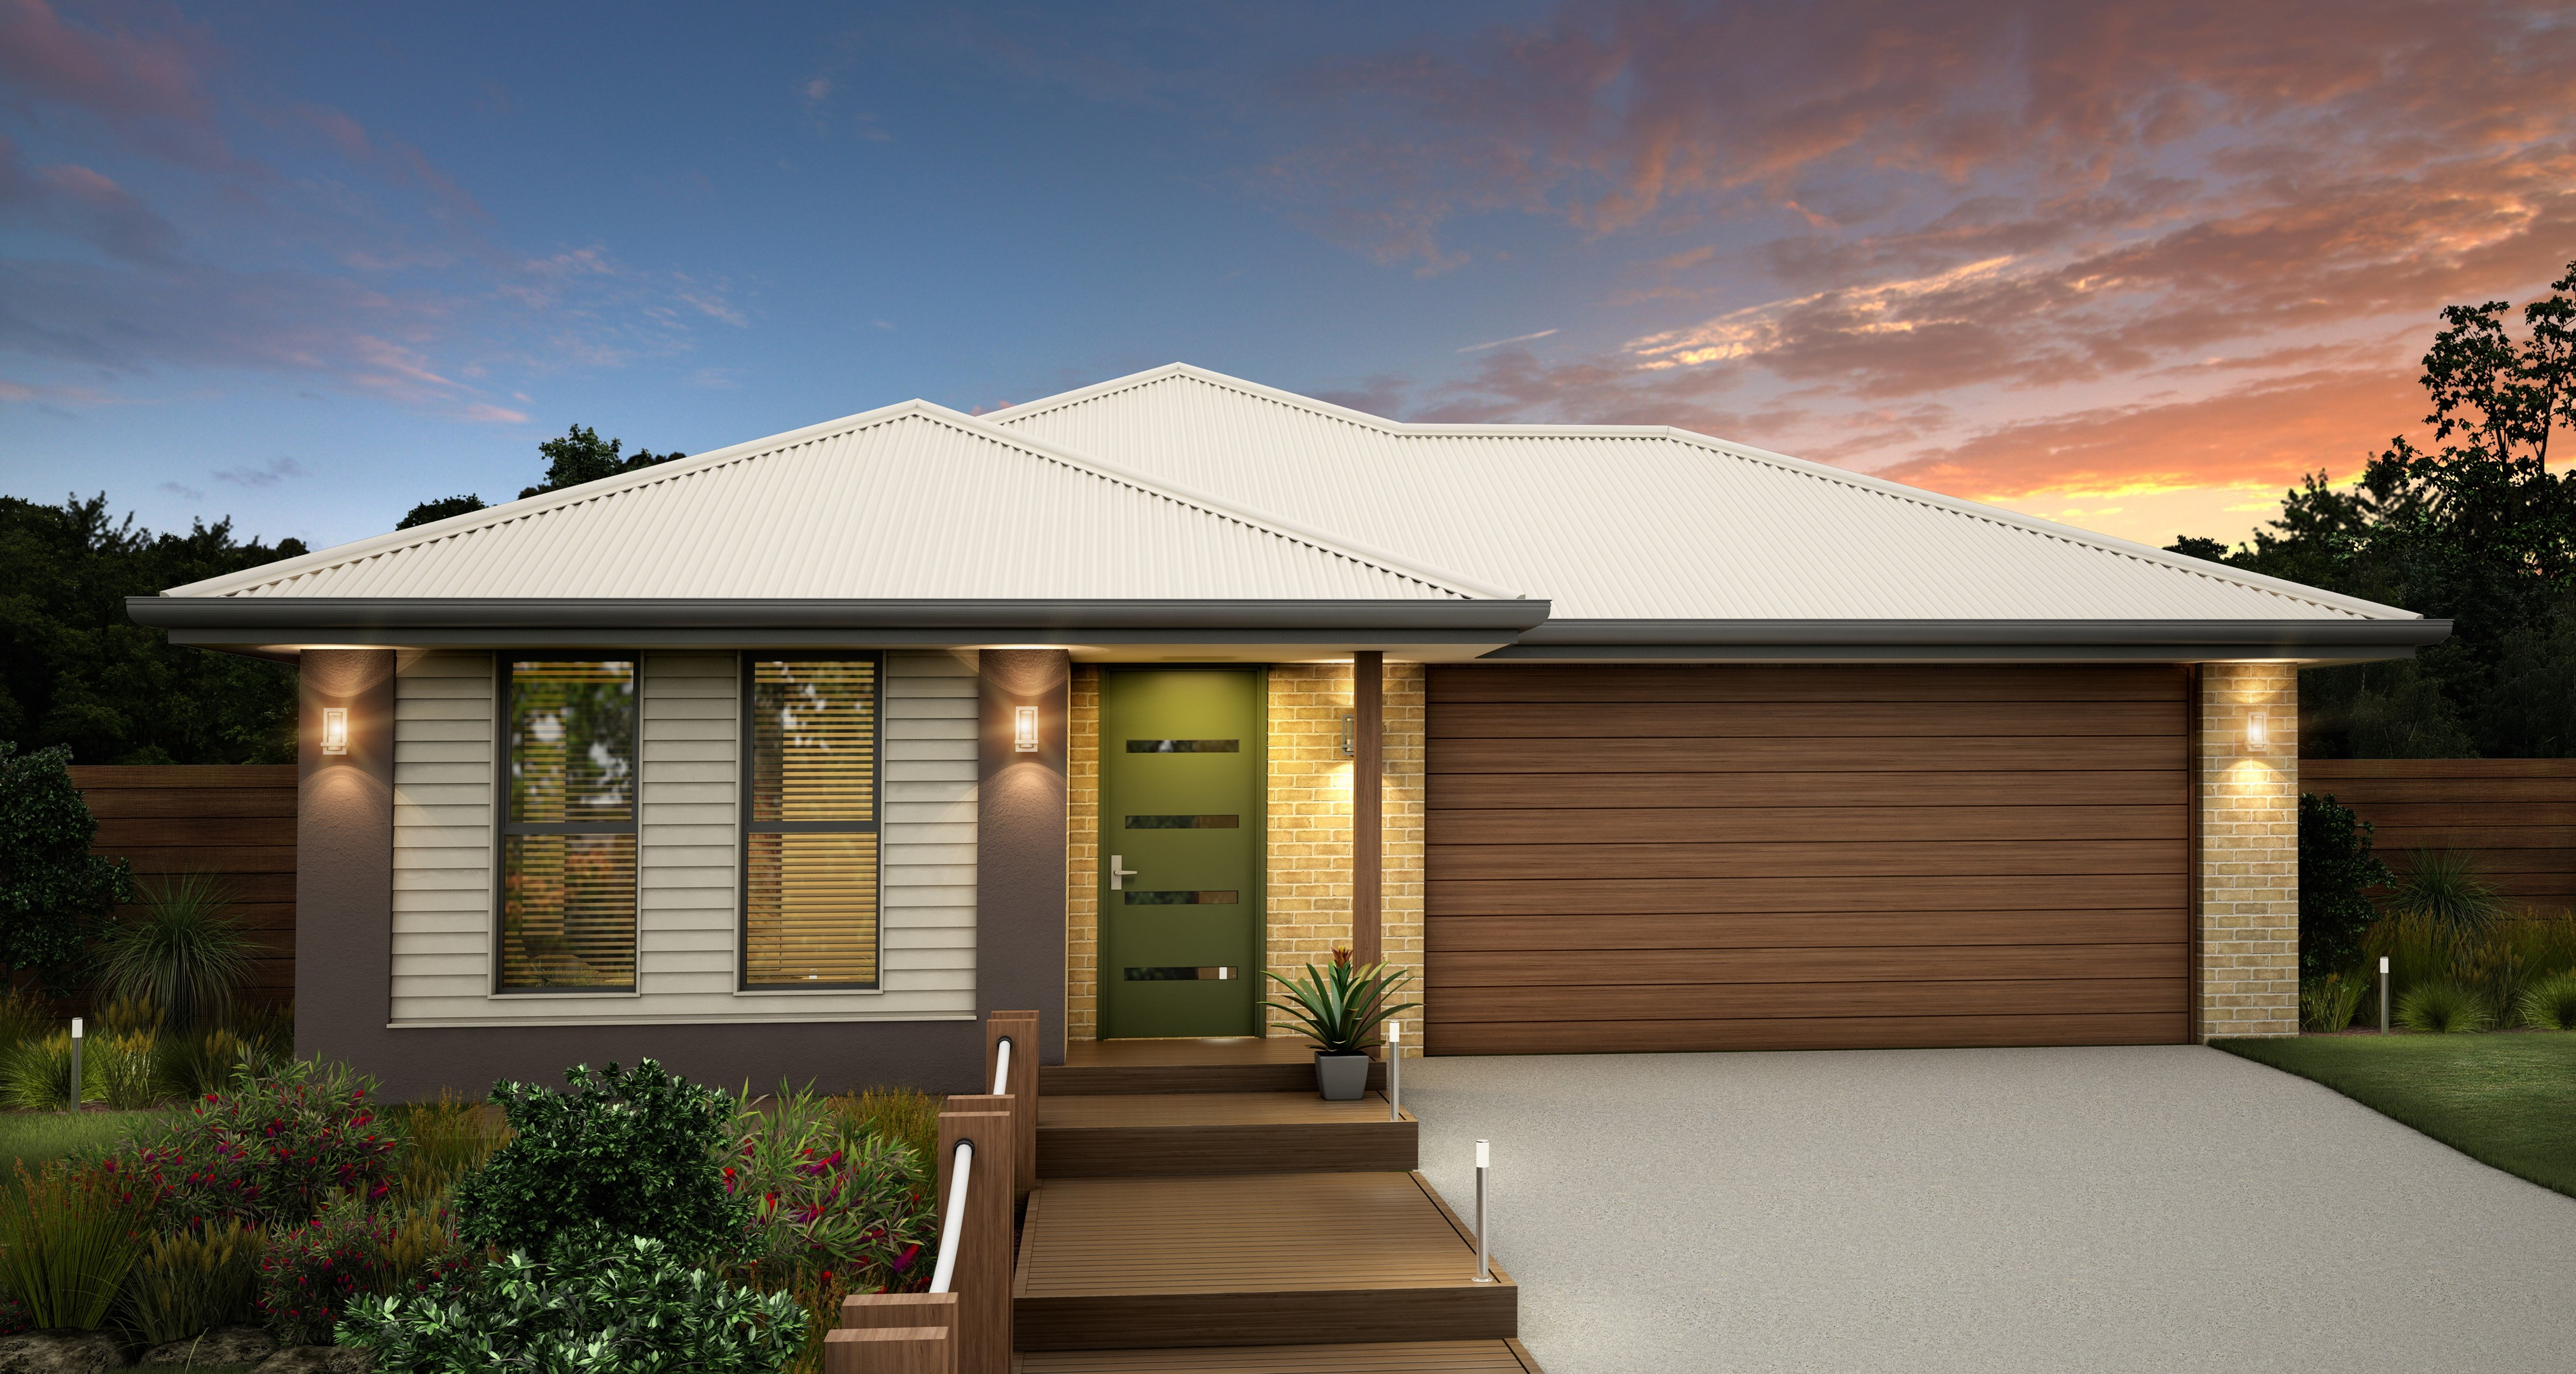 Lot 533 Waterside espl, Caboolture South